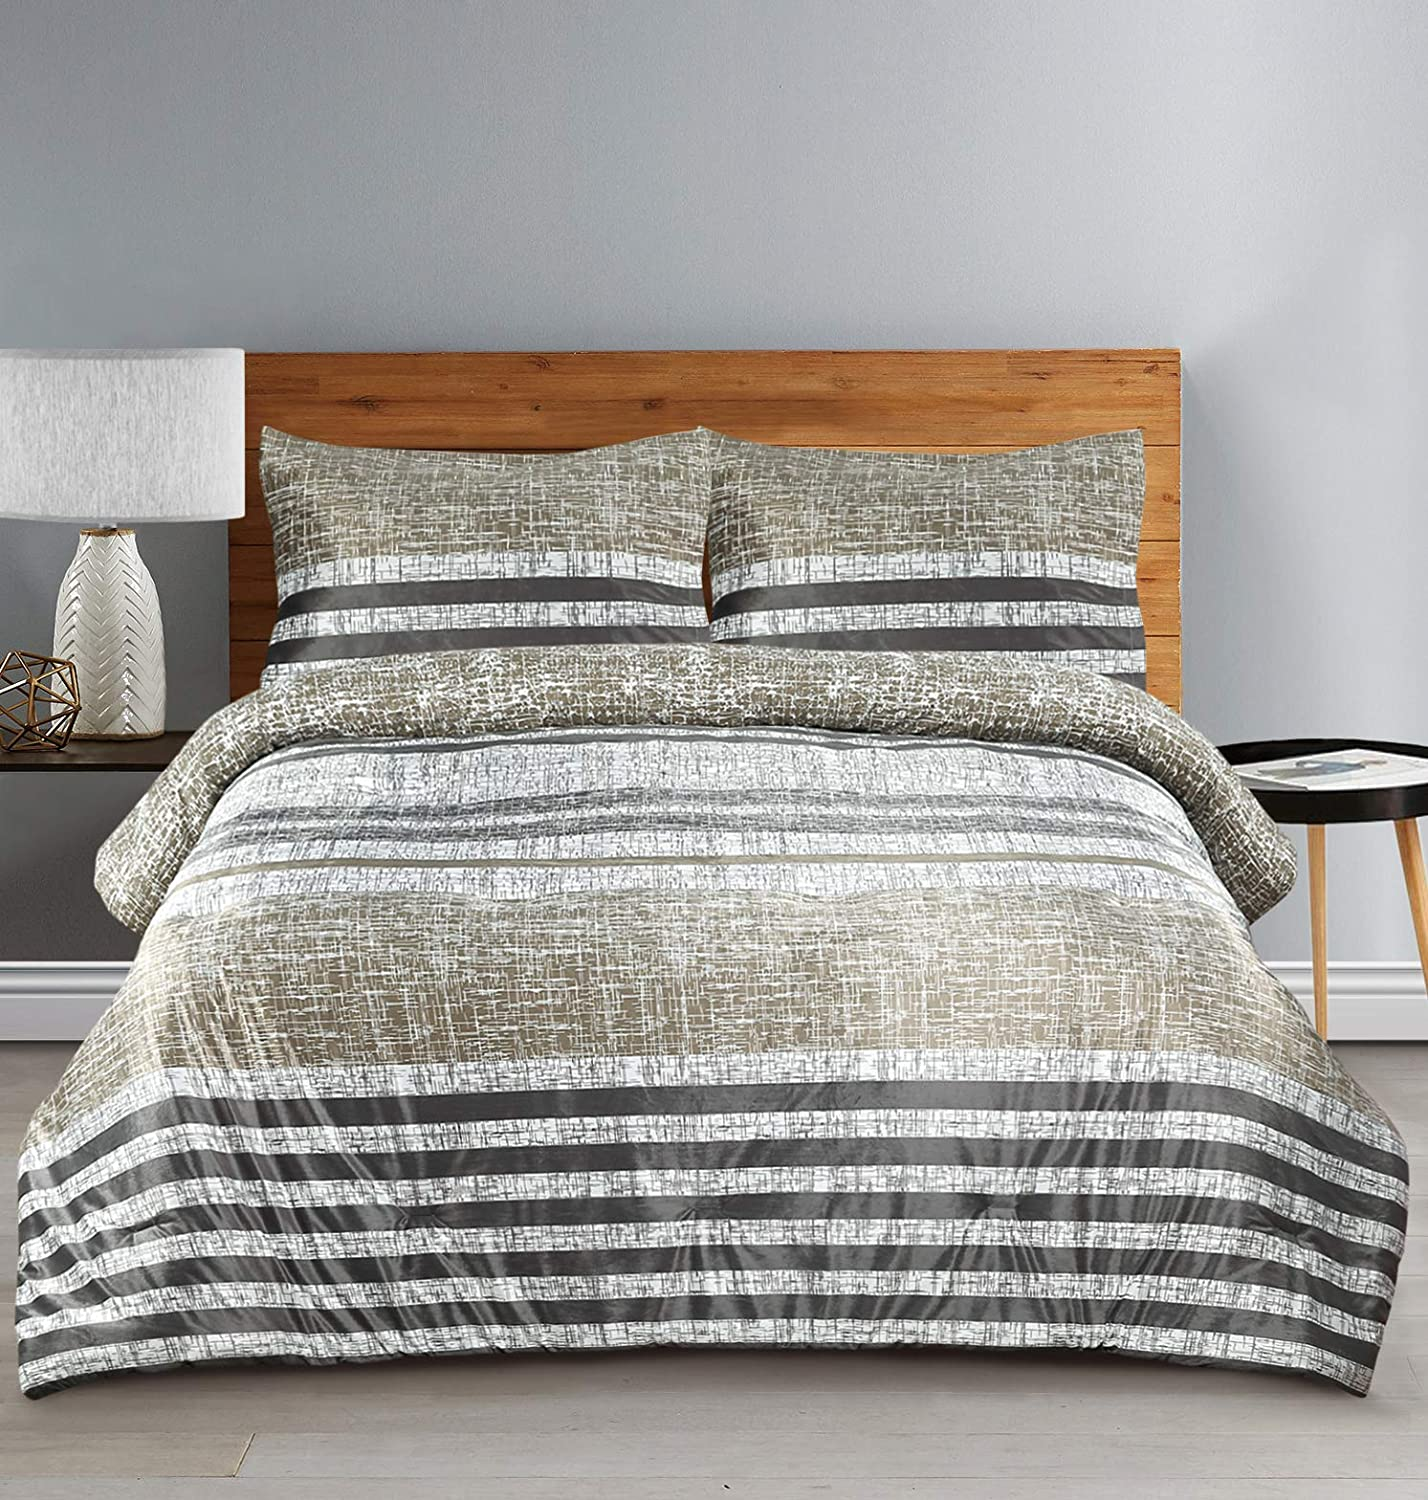 Muk Luks Earthy Stripe Comforter Set With Mink Front & Matching Shams, Taupe and Grey